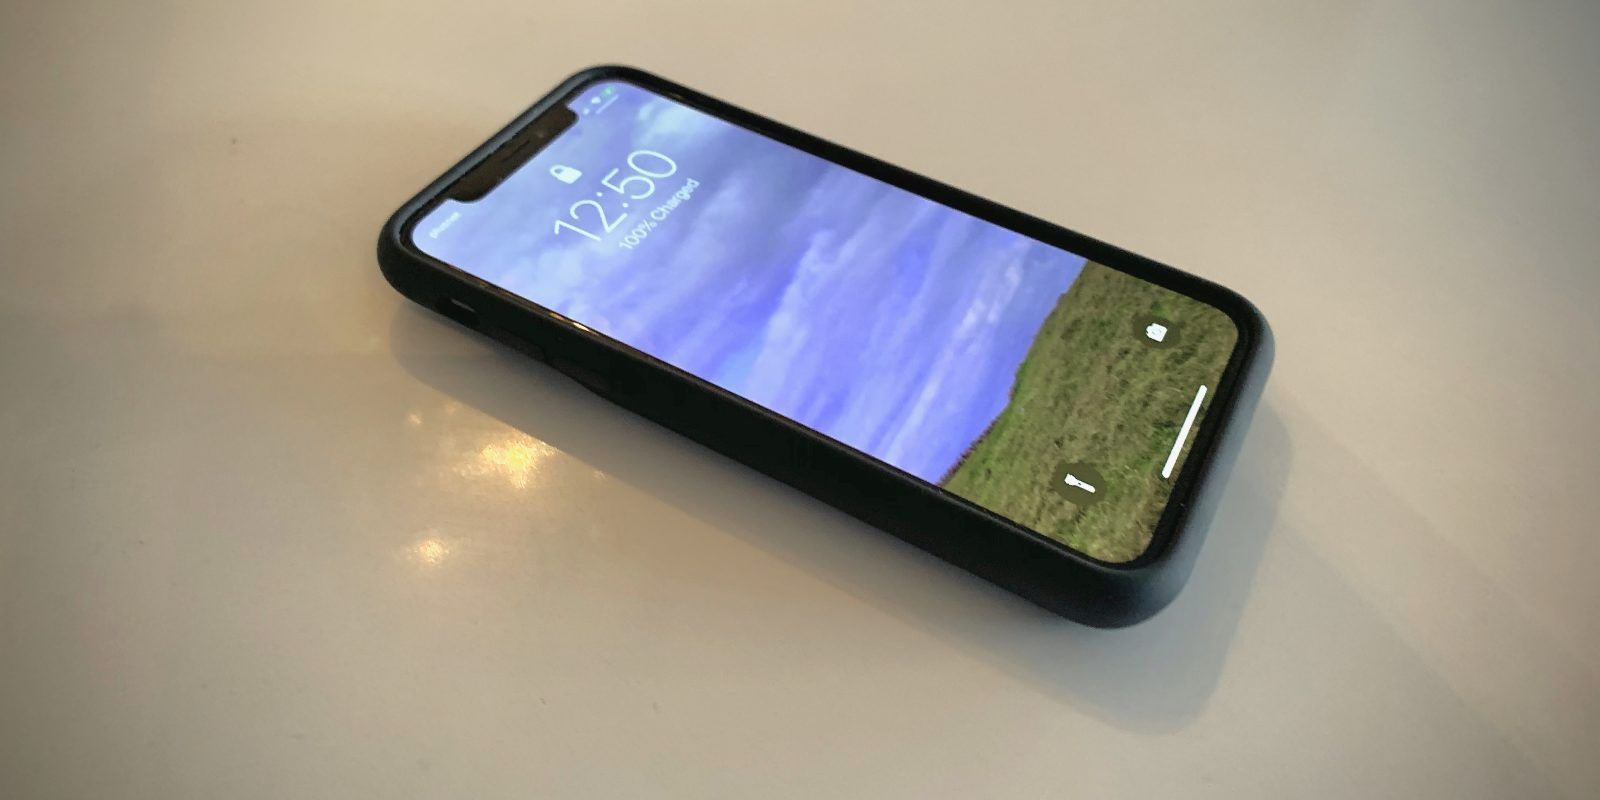 Handson using an iphone smart battery case for the first